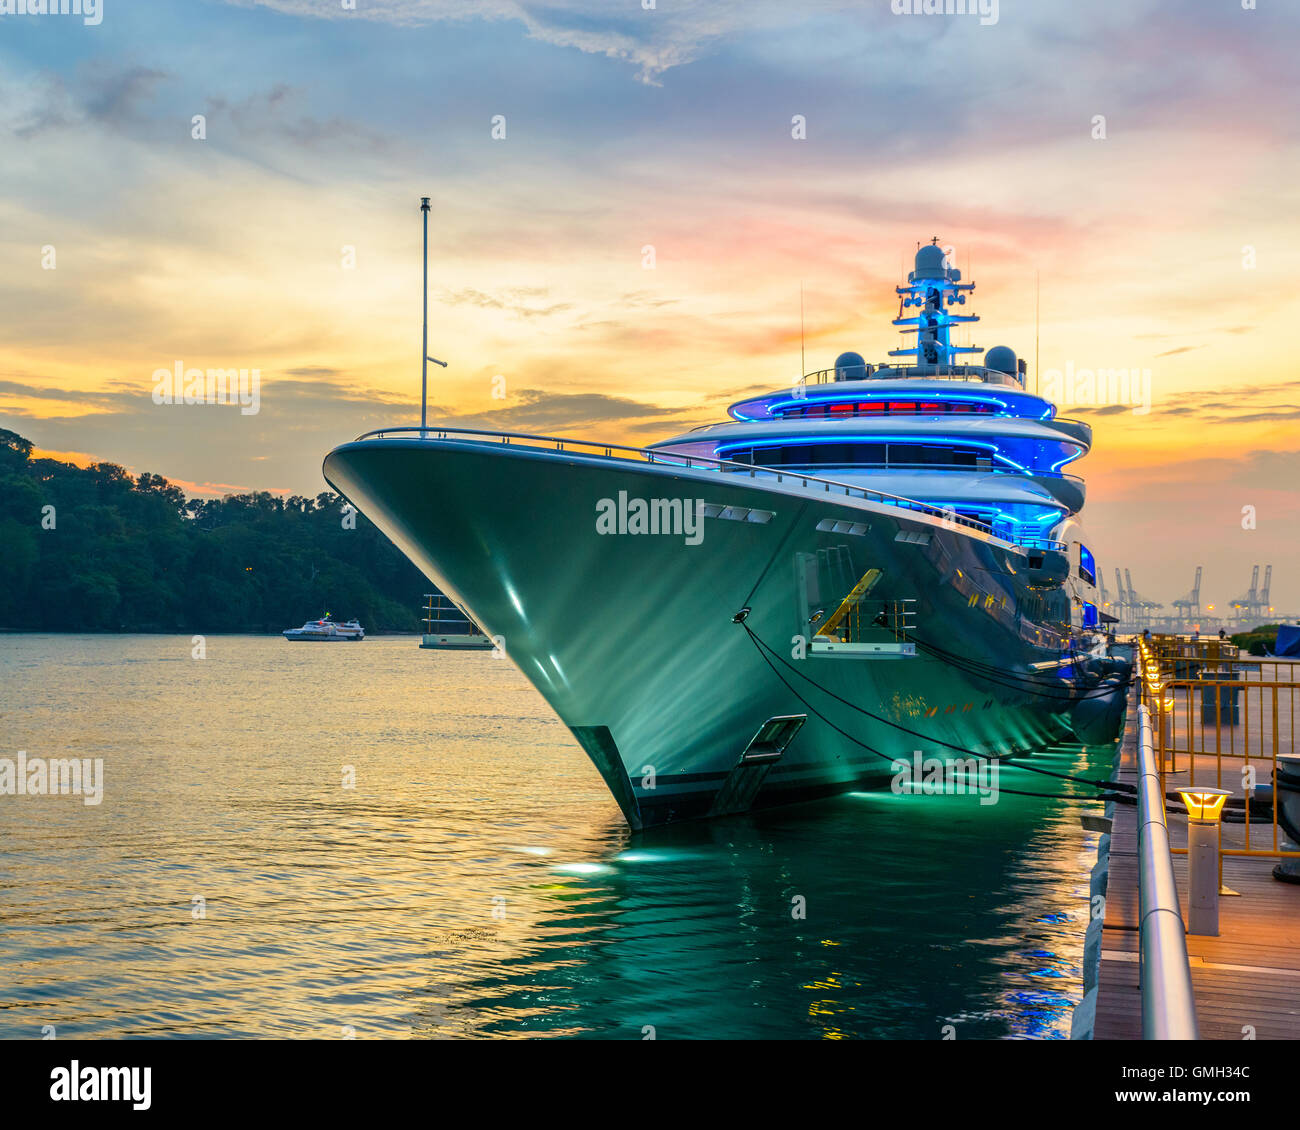 Docked green yacht at sunset in Singapore - Stock Image